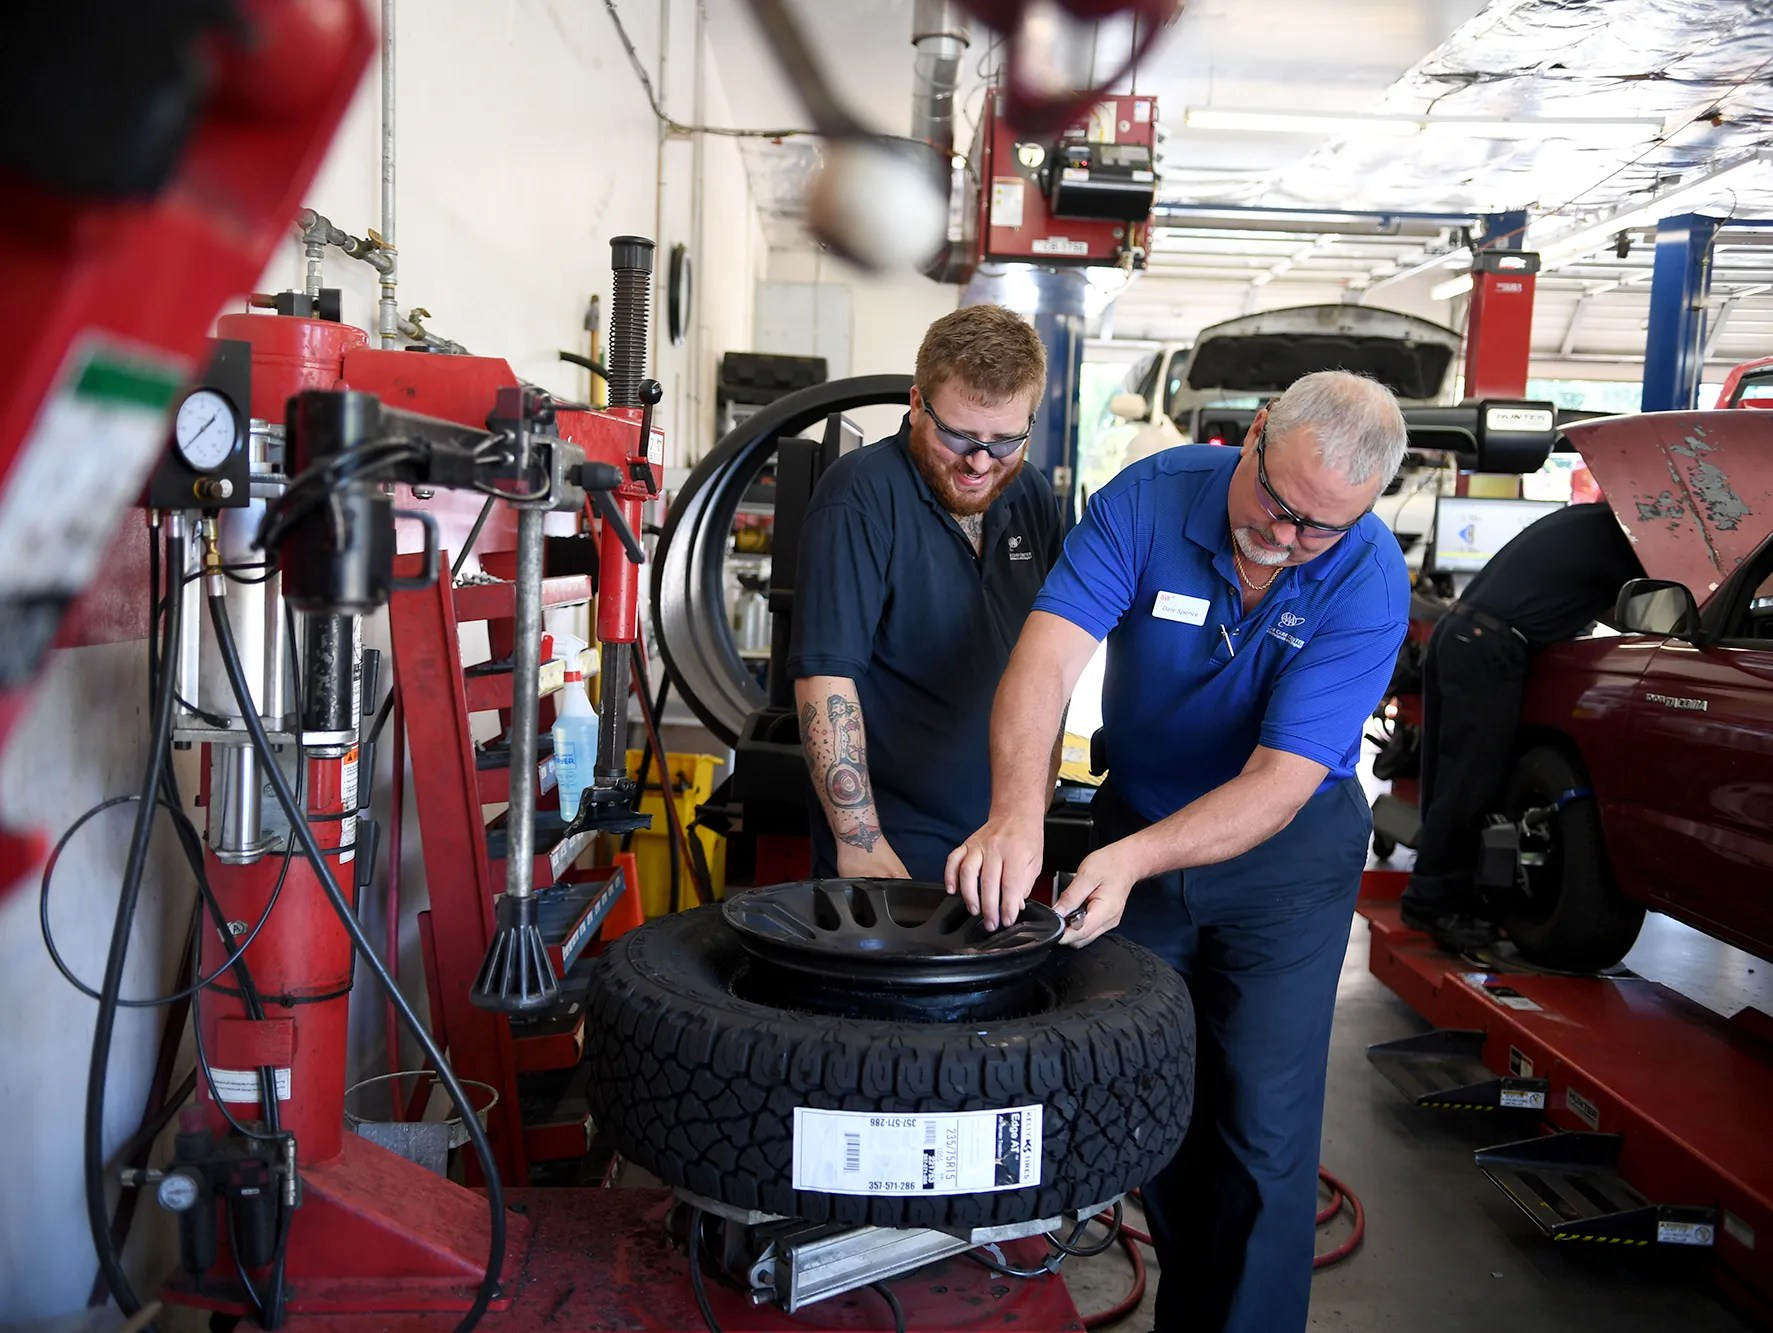 Dealers upset as Michelin moves into online sales